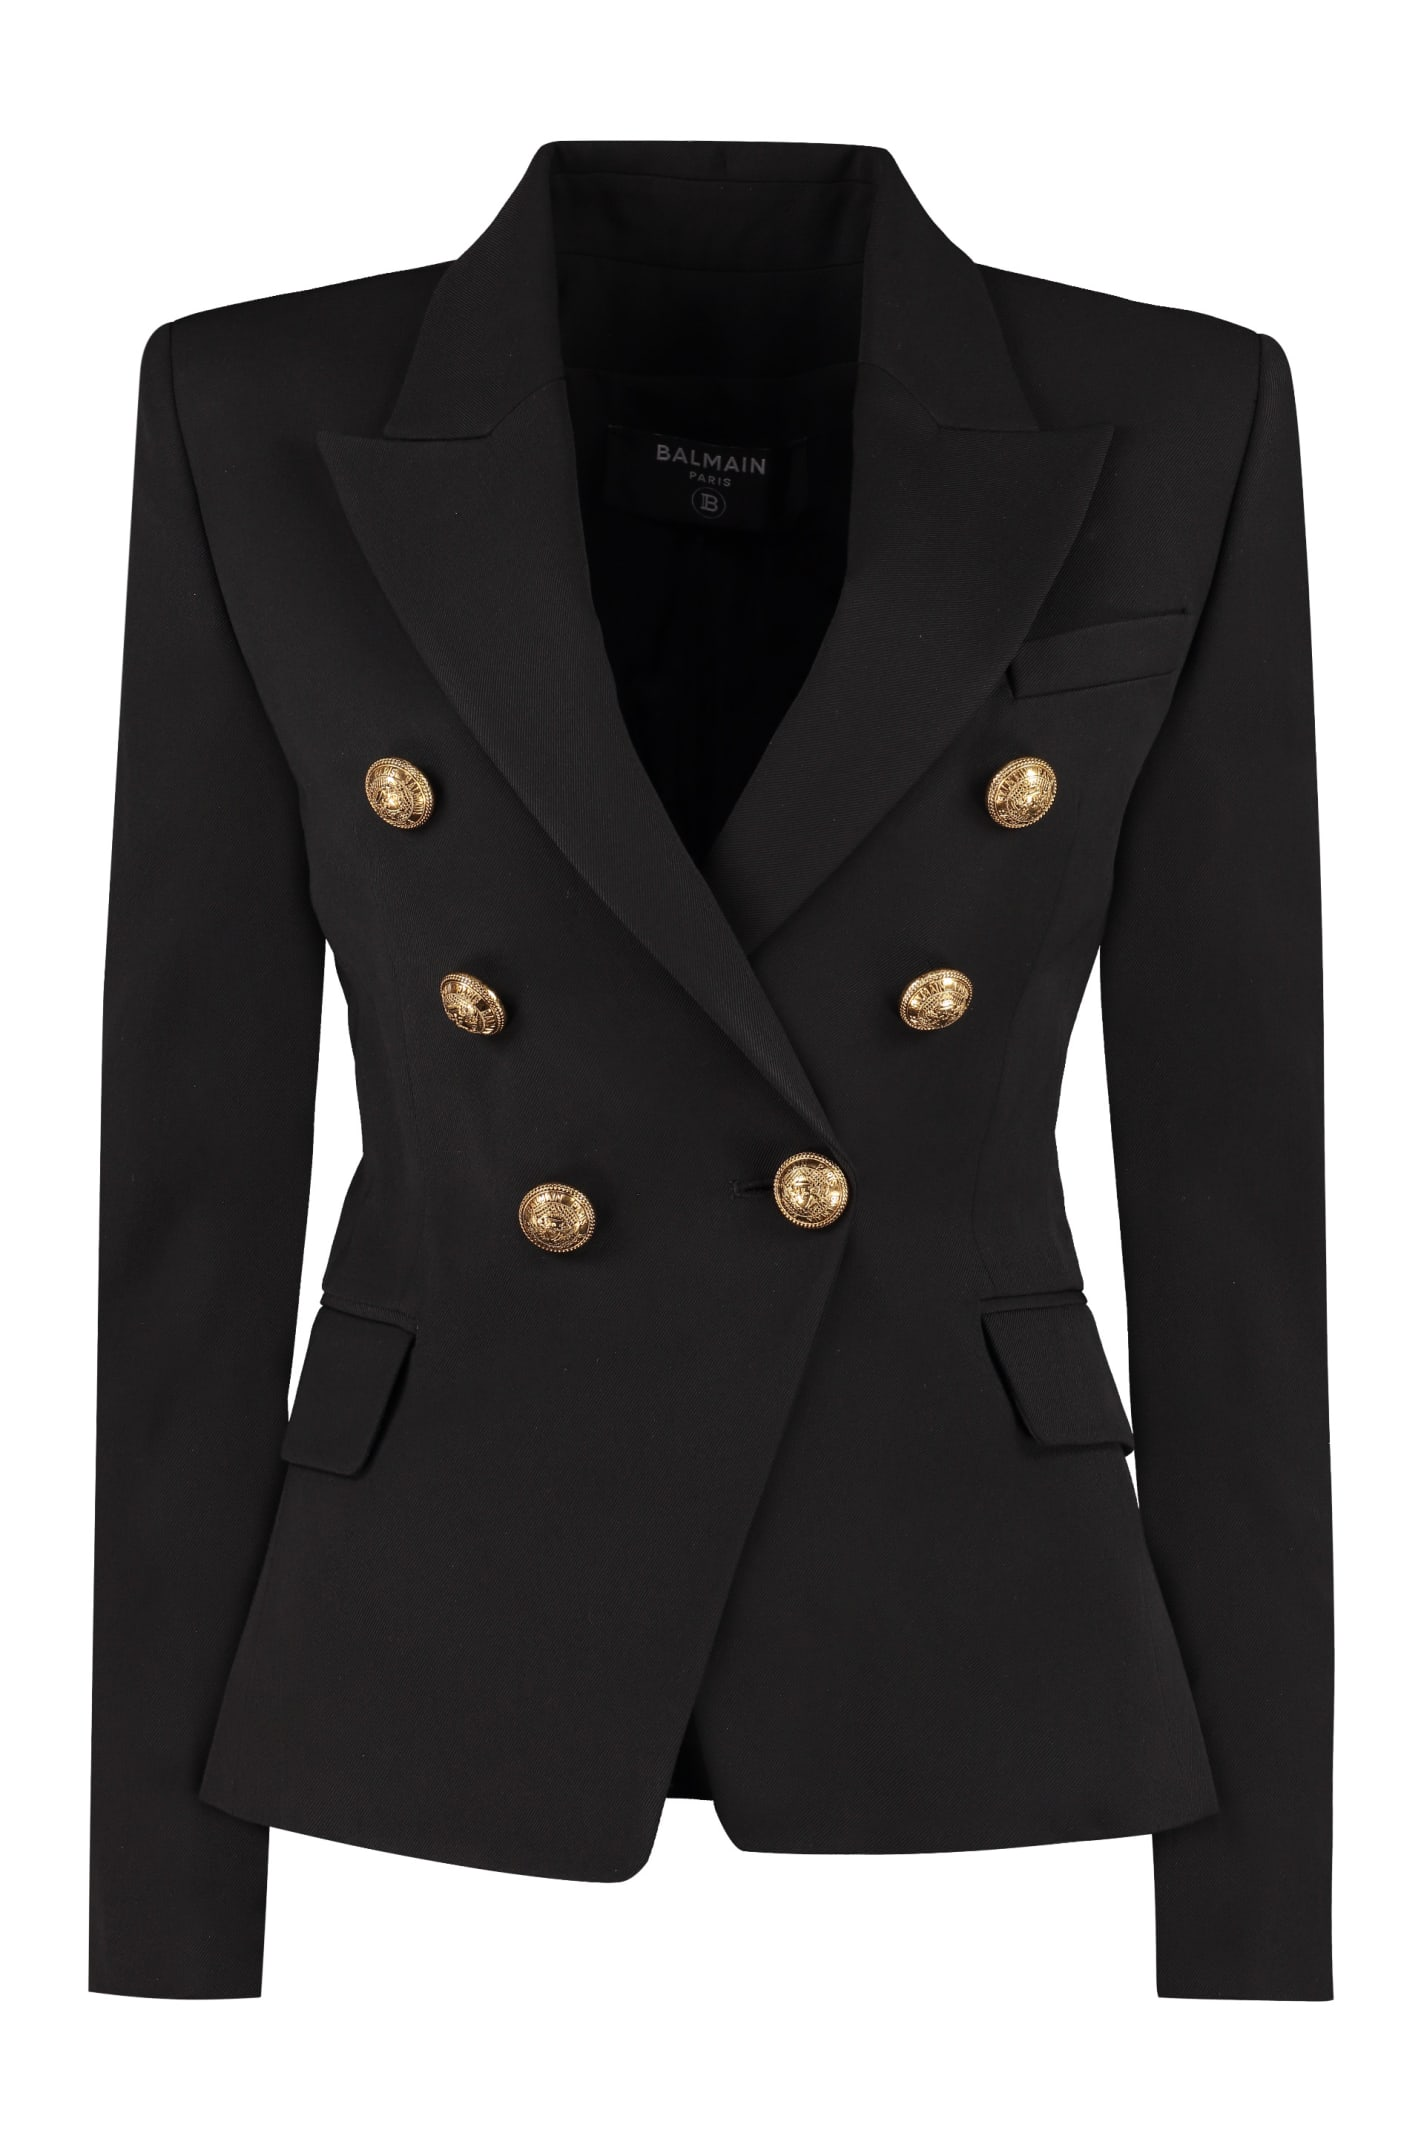 Balmain Double-breasted Blazer In Black